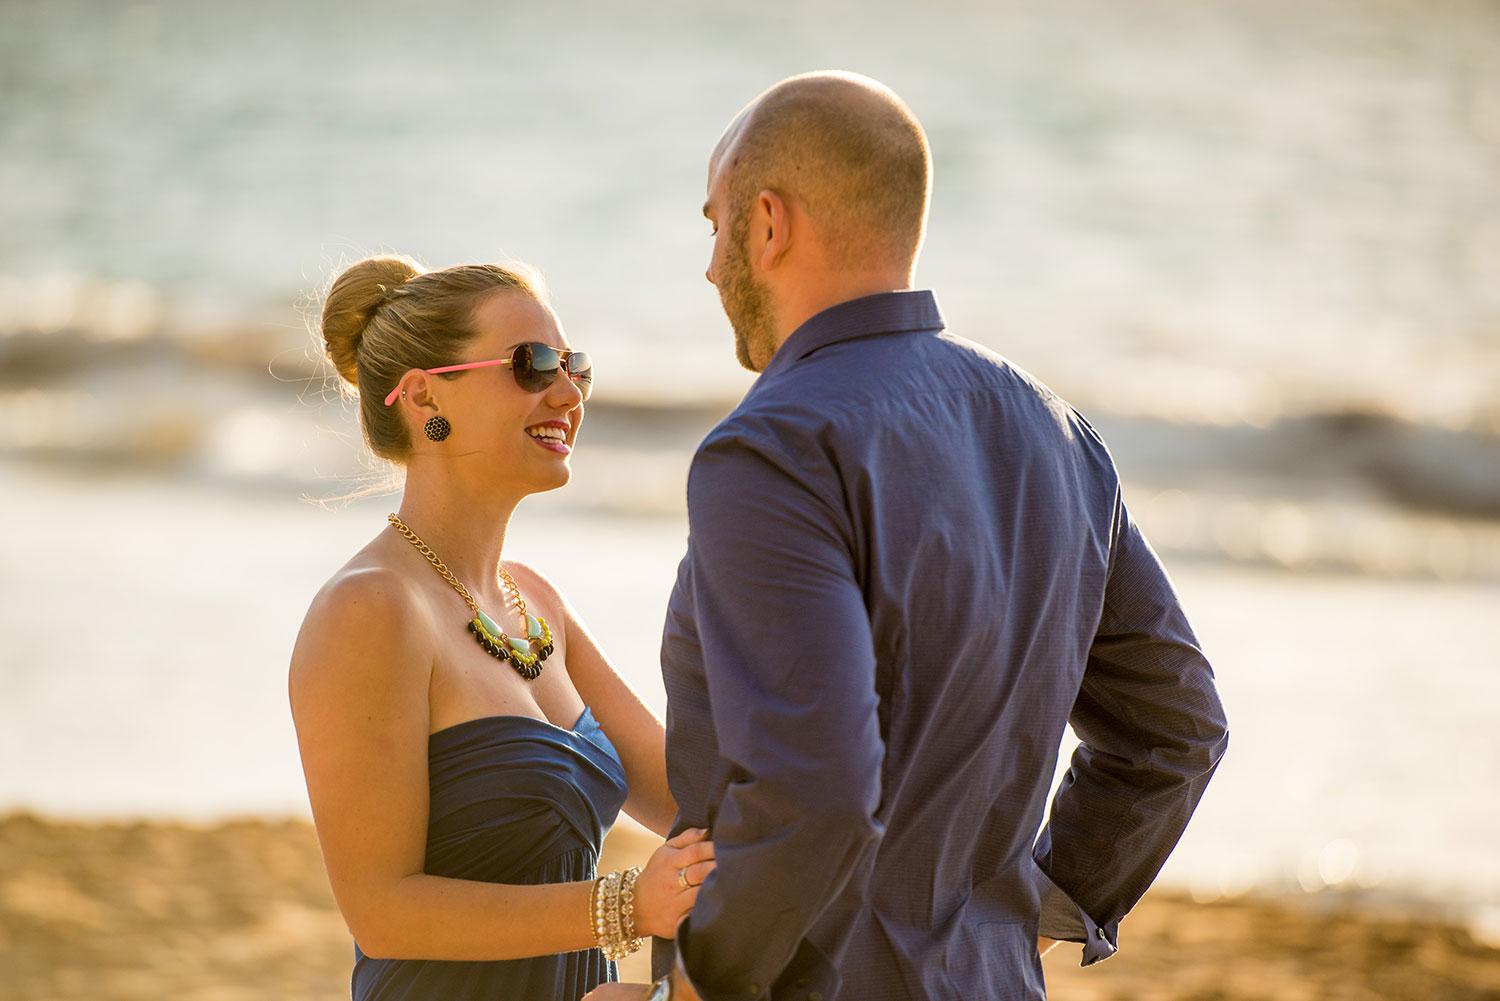 5 Reasons to Hire a Proposal Photographer: Maui Proposal Photographer